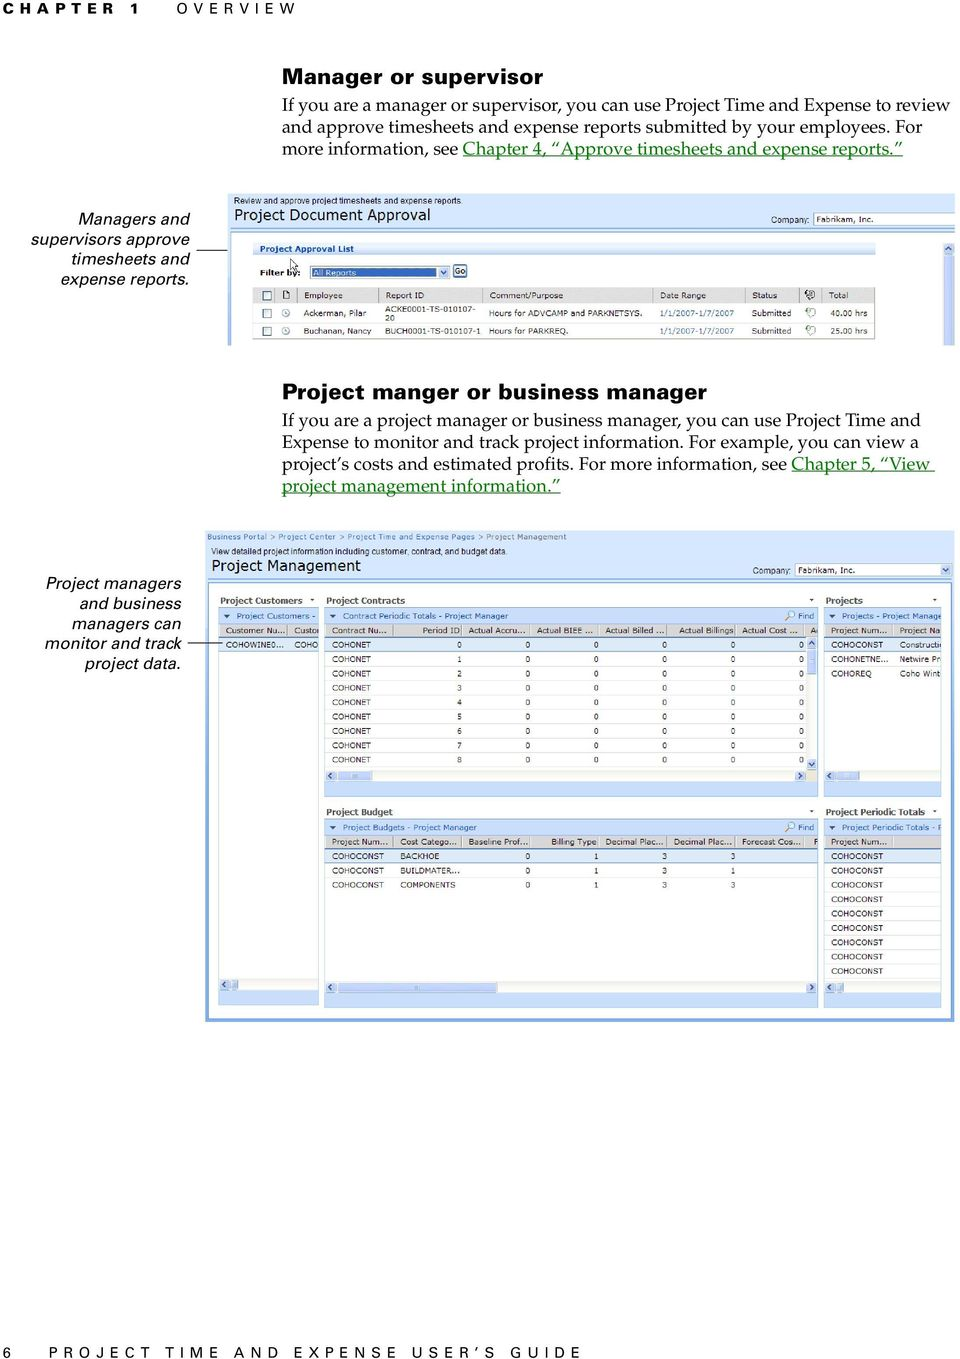 Project manger or business manager If you are a project manager or business manager, you can use Project Time and Expense to monitor and track project information.